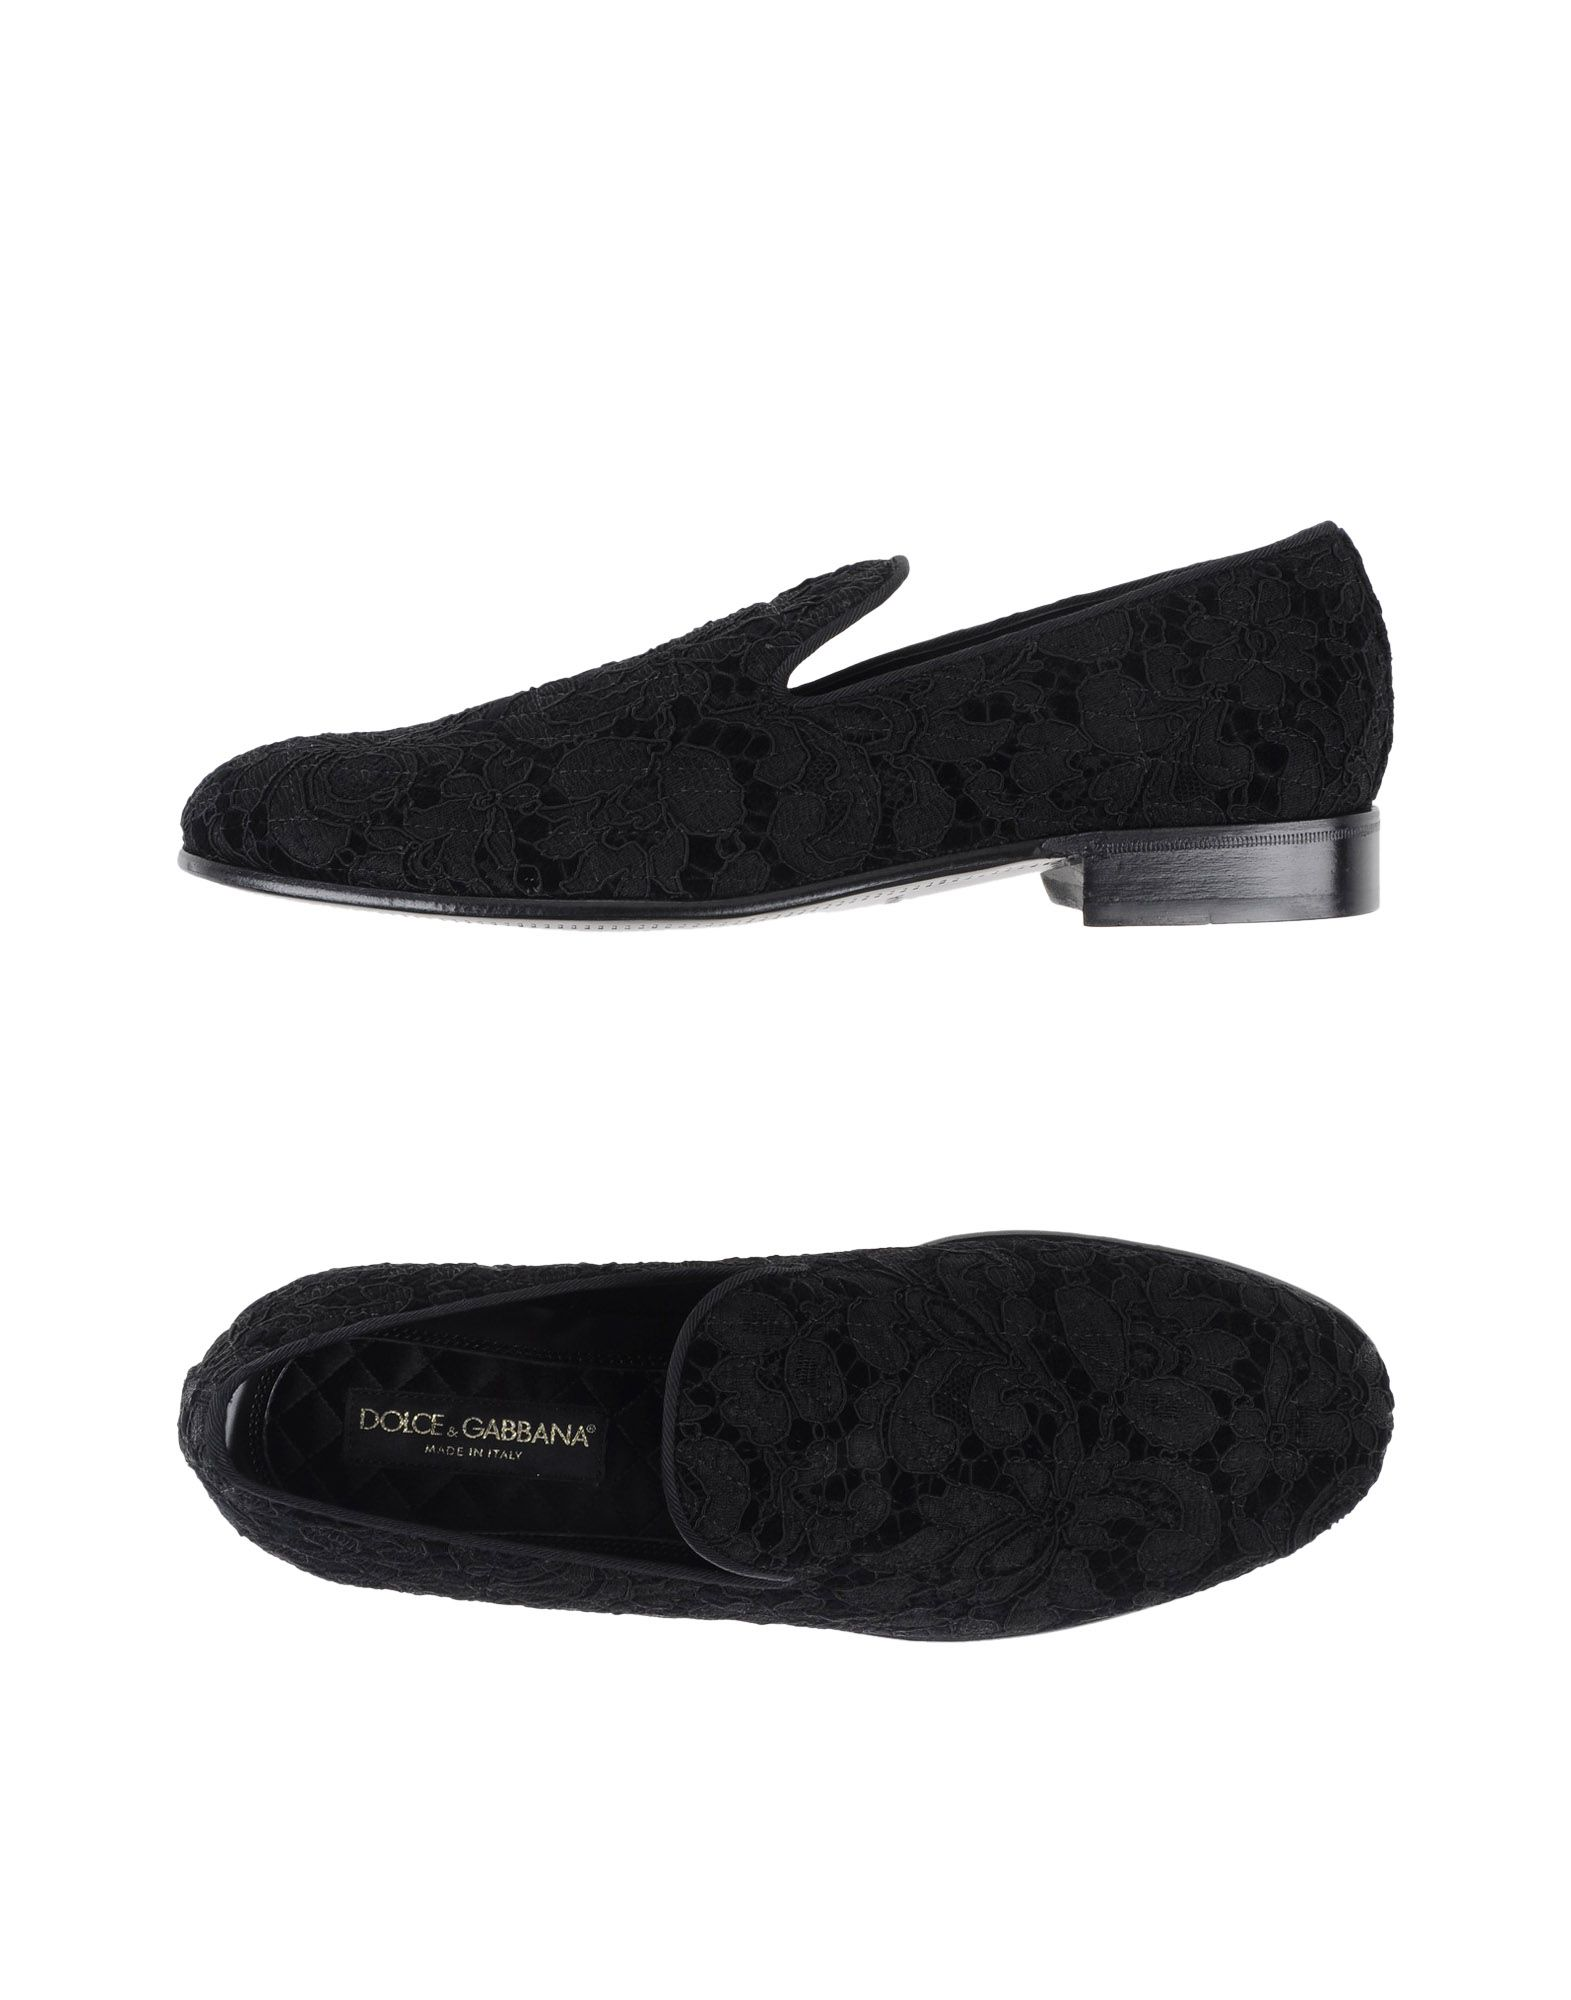 Dolce & Gabbana Loafers - Men Dolce & Gabbana Australia Loafers online on  Australia Gabbana - 44998648VS 3a5e5a